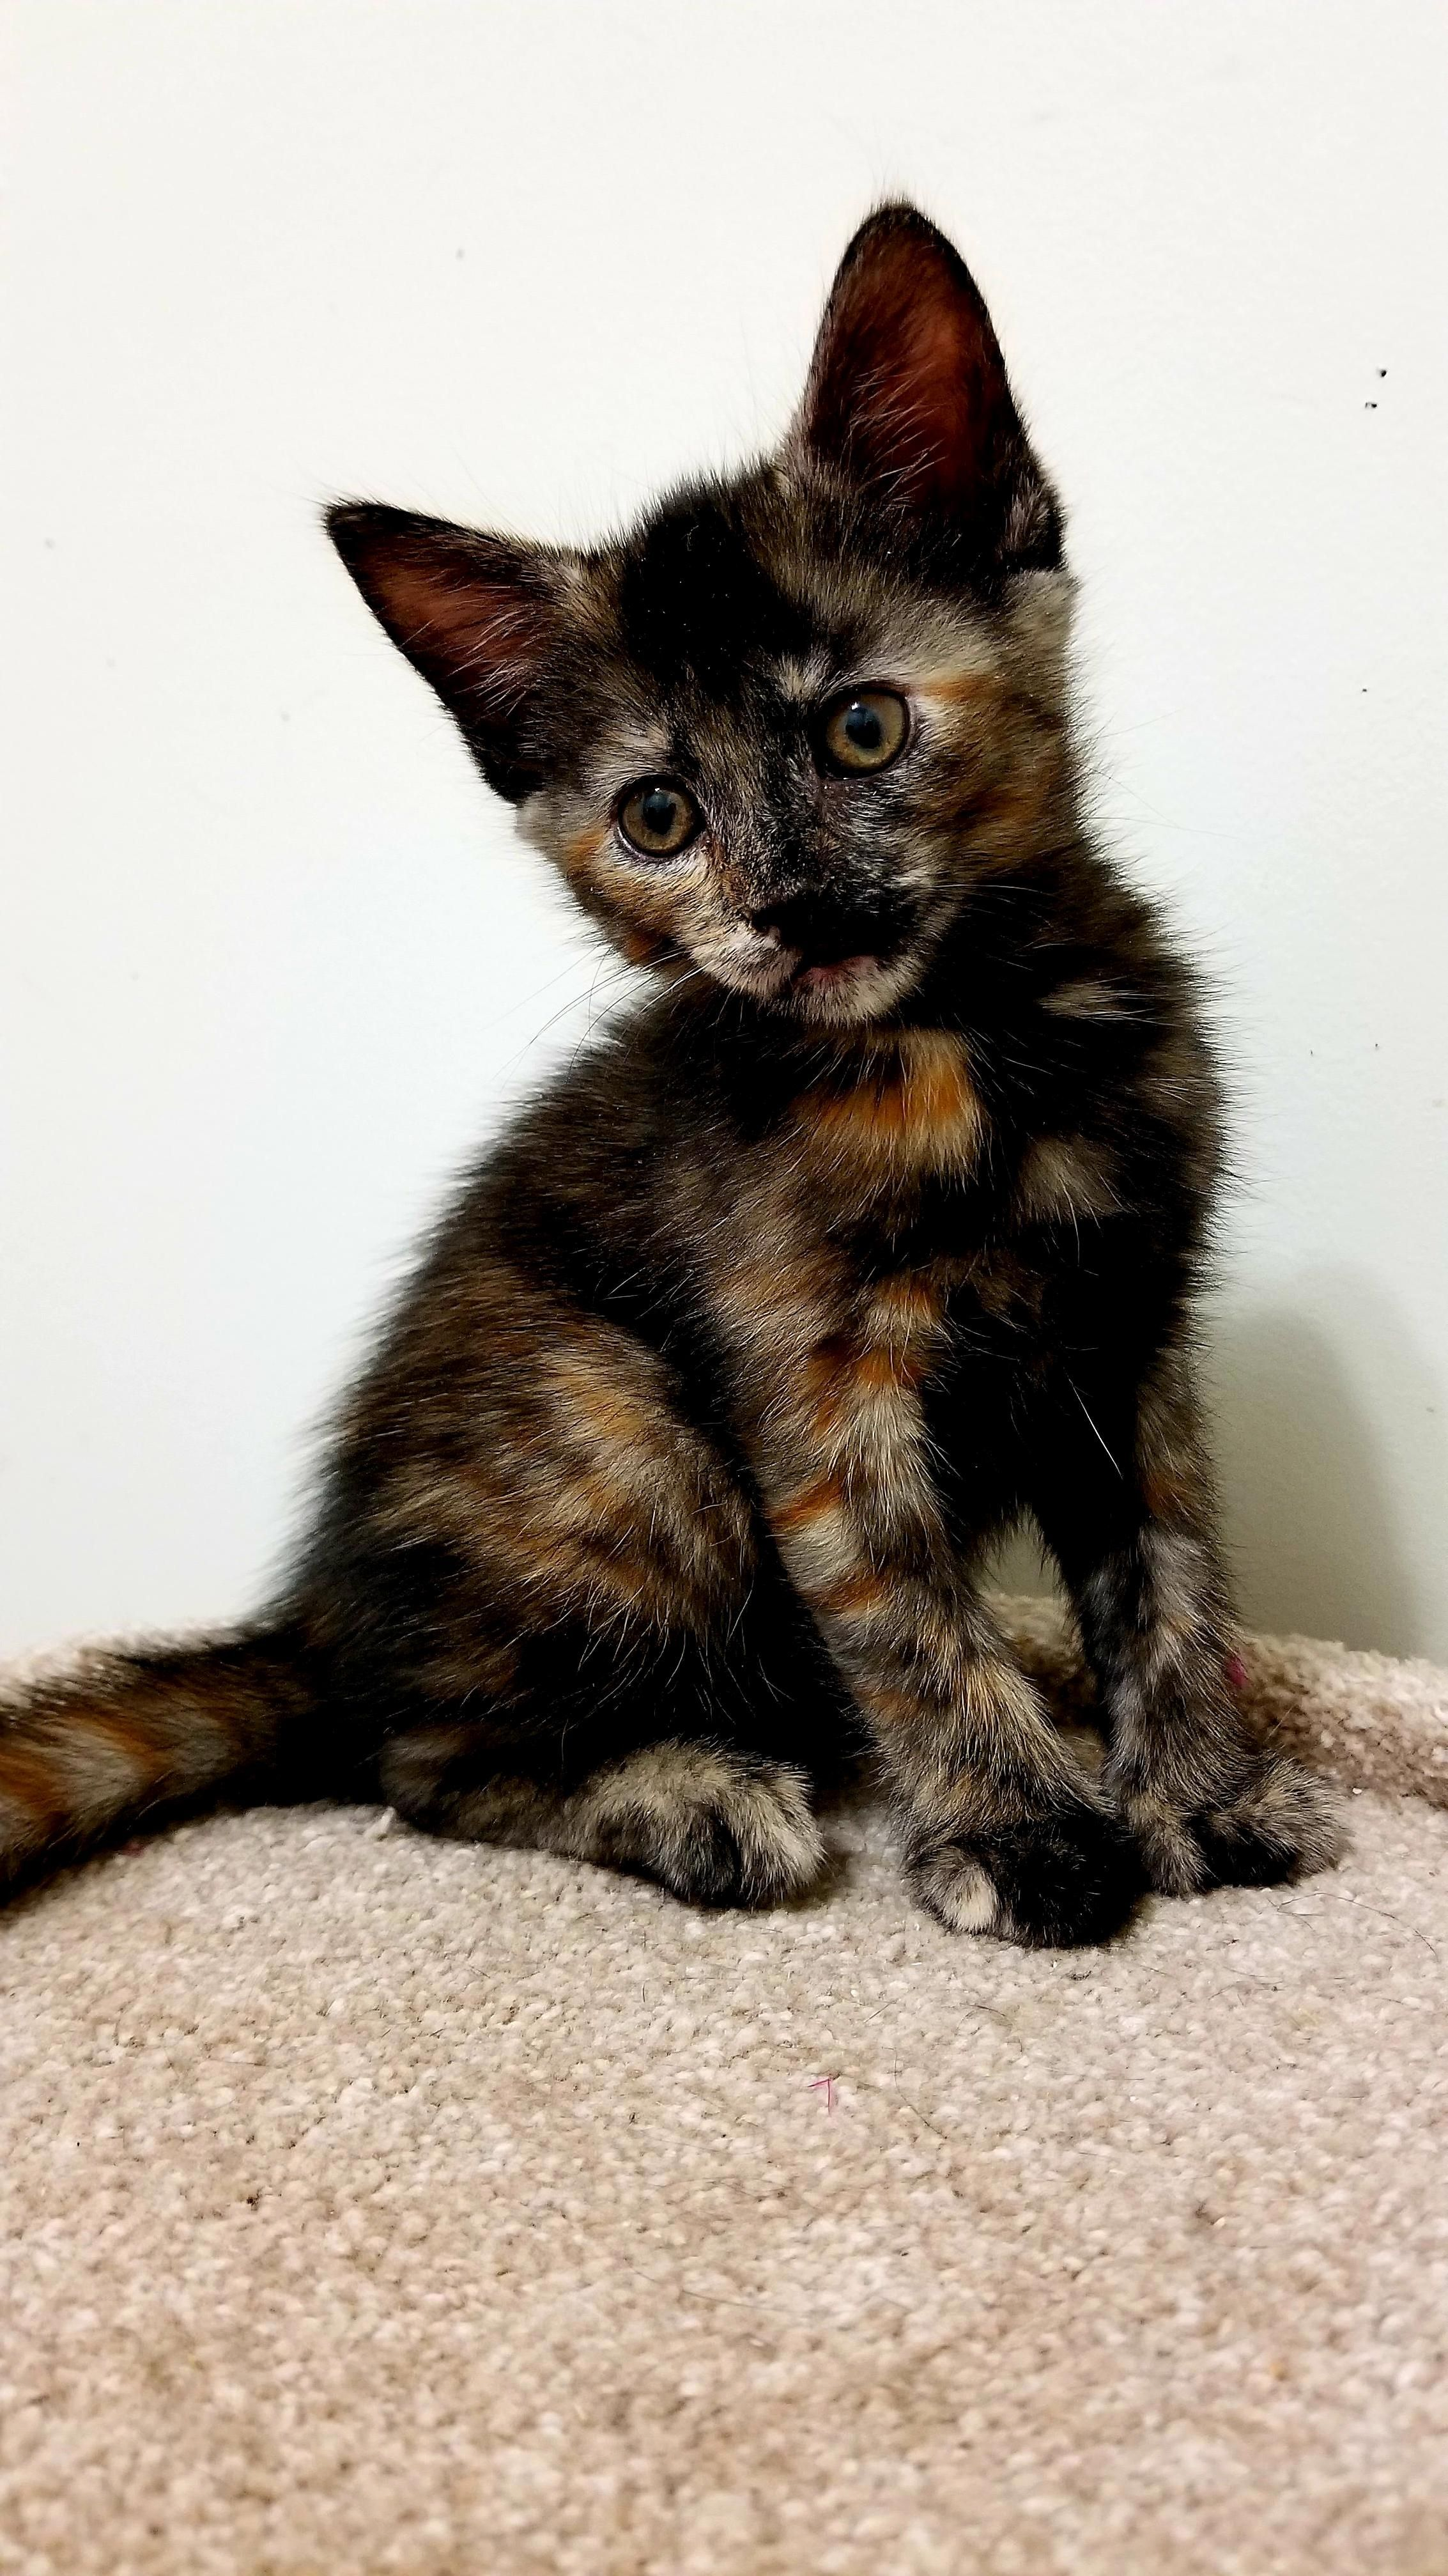 Betty The Tiny Princess Cat Cute Cats And Kittens Cute Cats Cats And Kittens